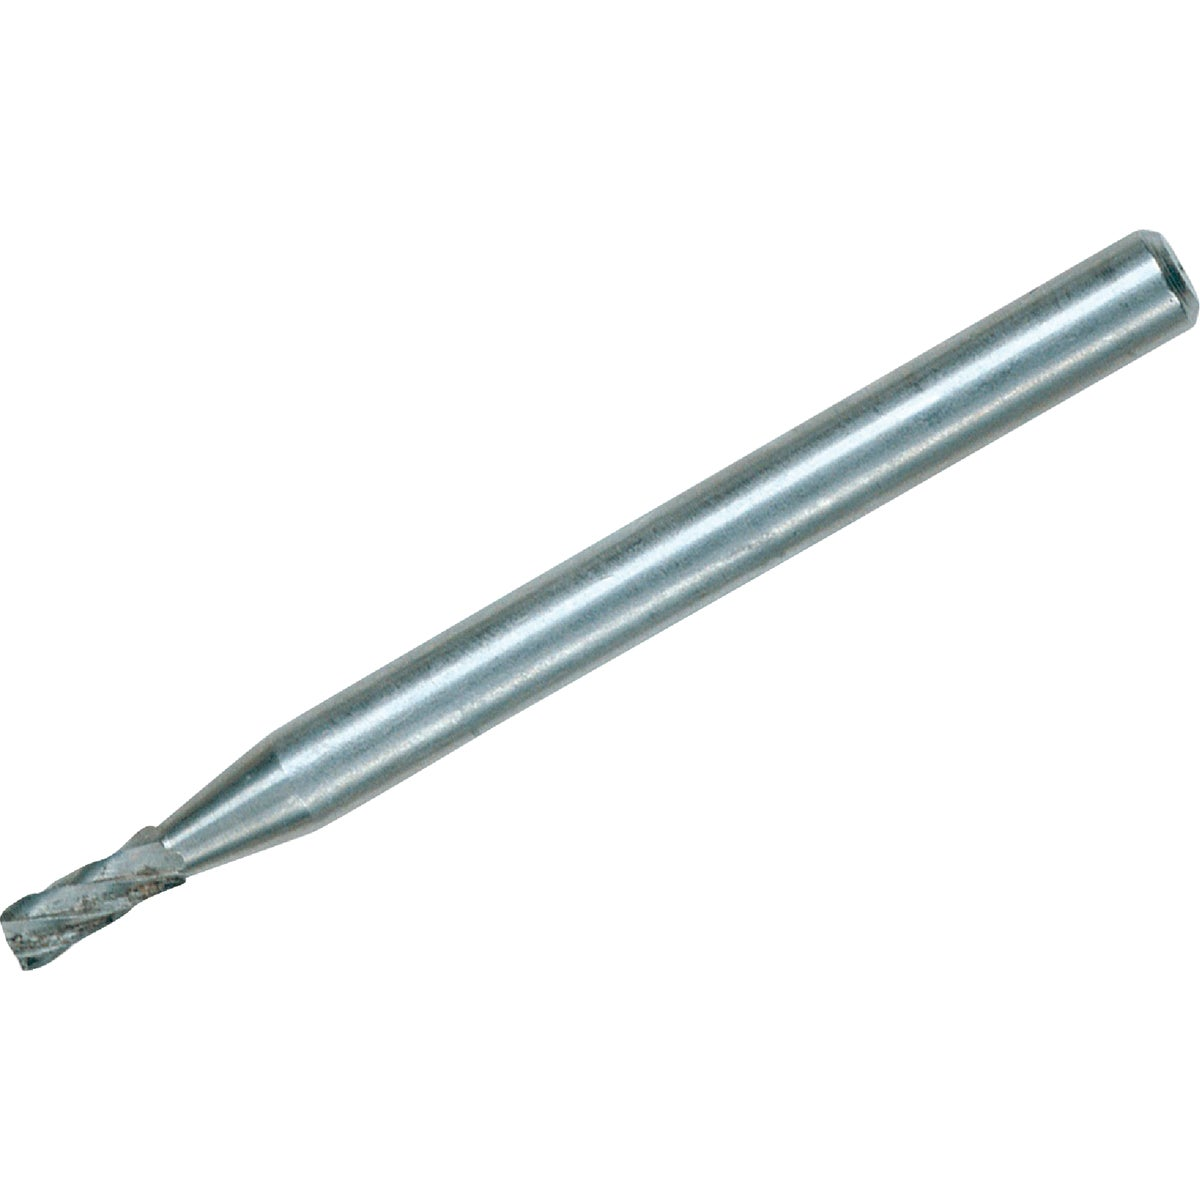 HIGH SPEED STEEL CUTTER